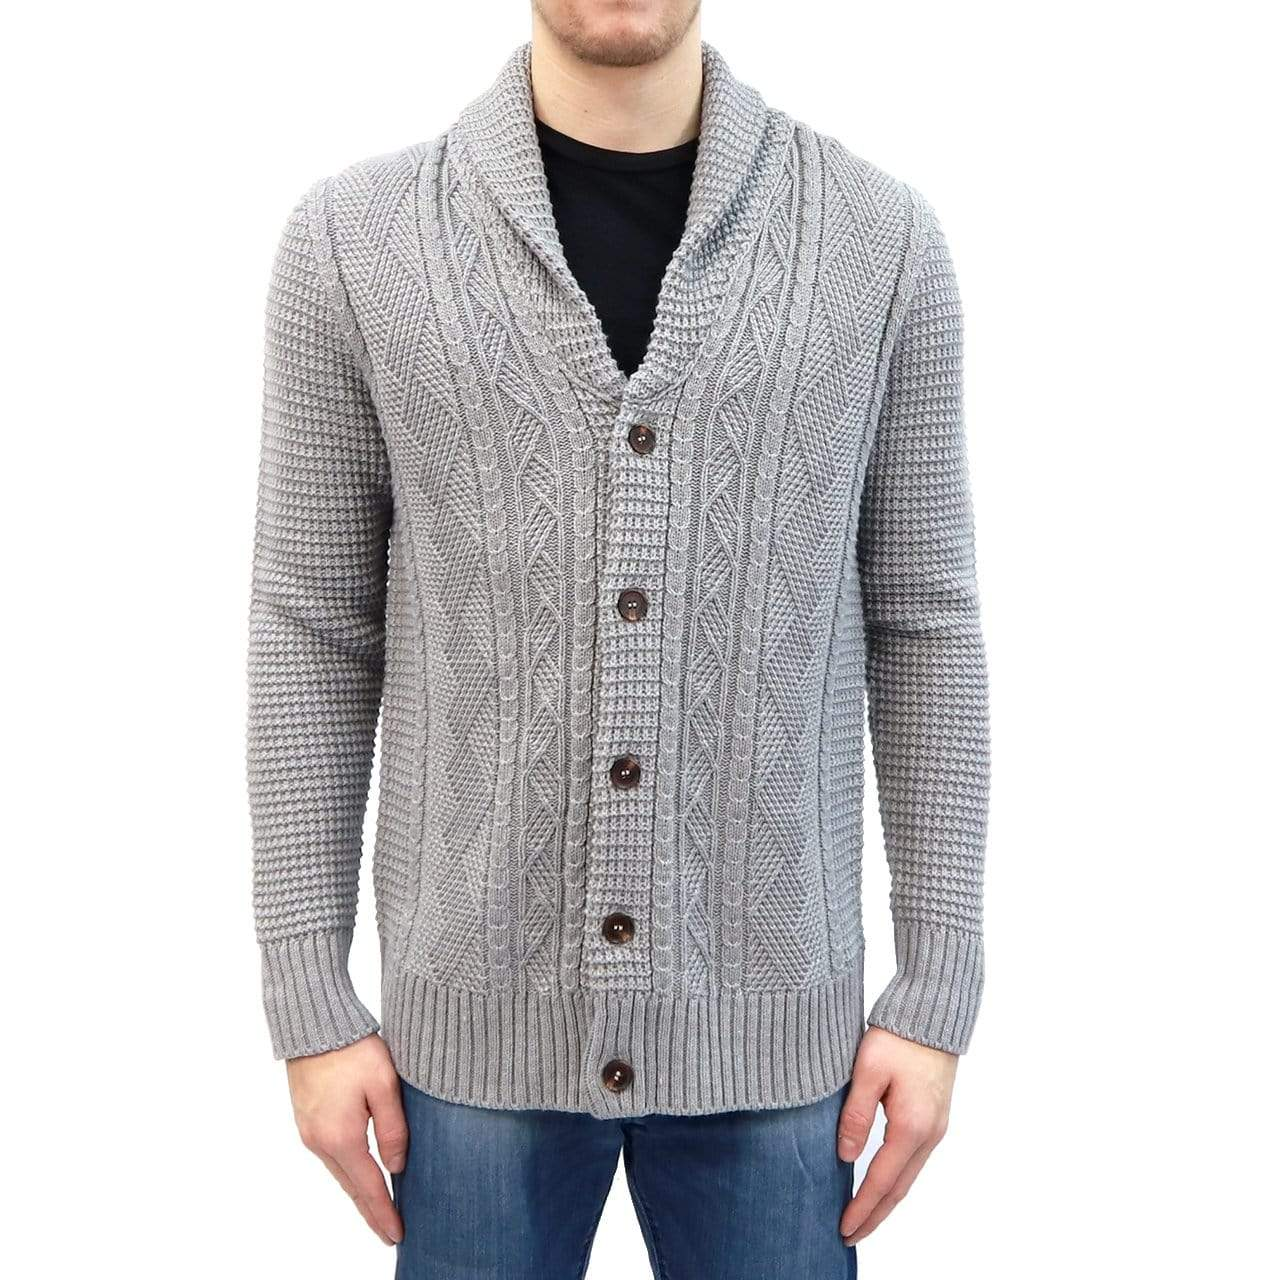 RD International Style GREY / S Cable Knit Cardigan Sweater + more colours